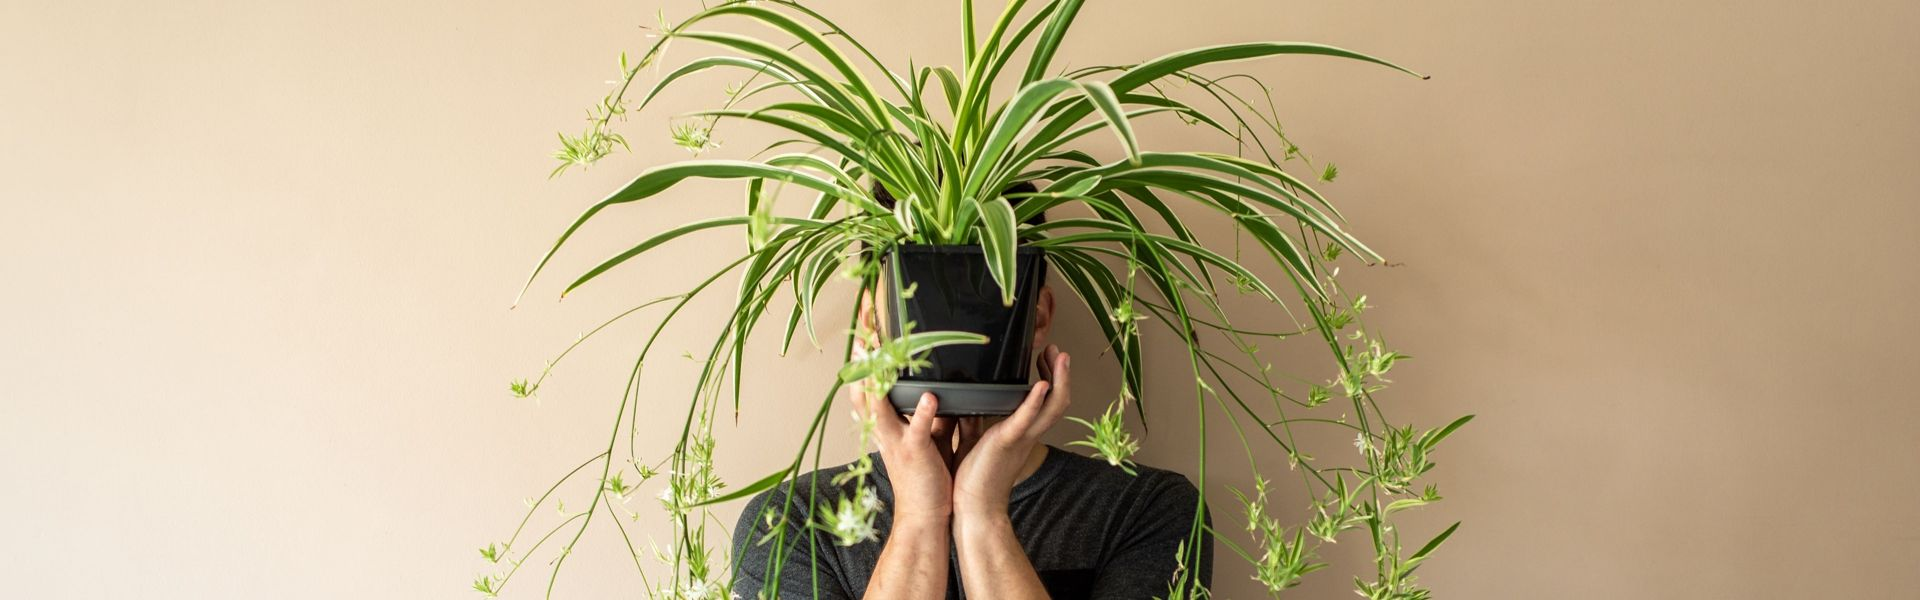 Why You Should Have Spider Plants at Home